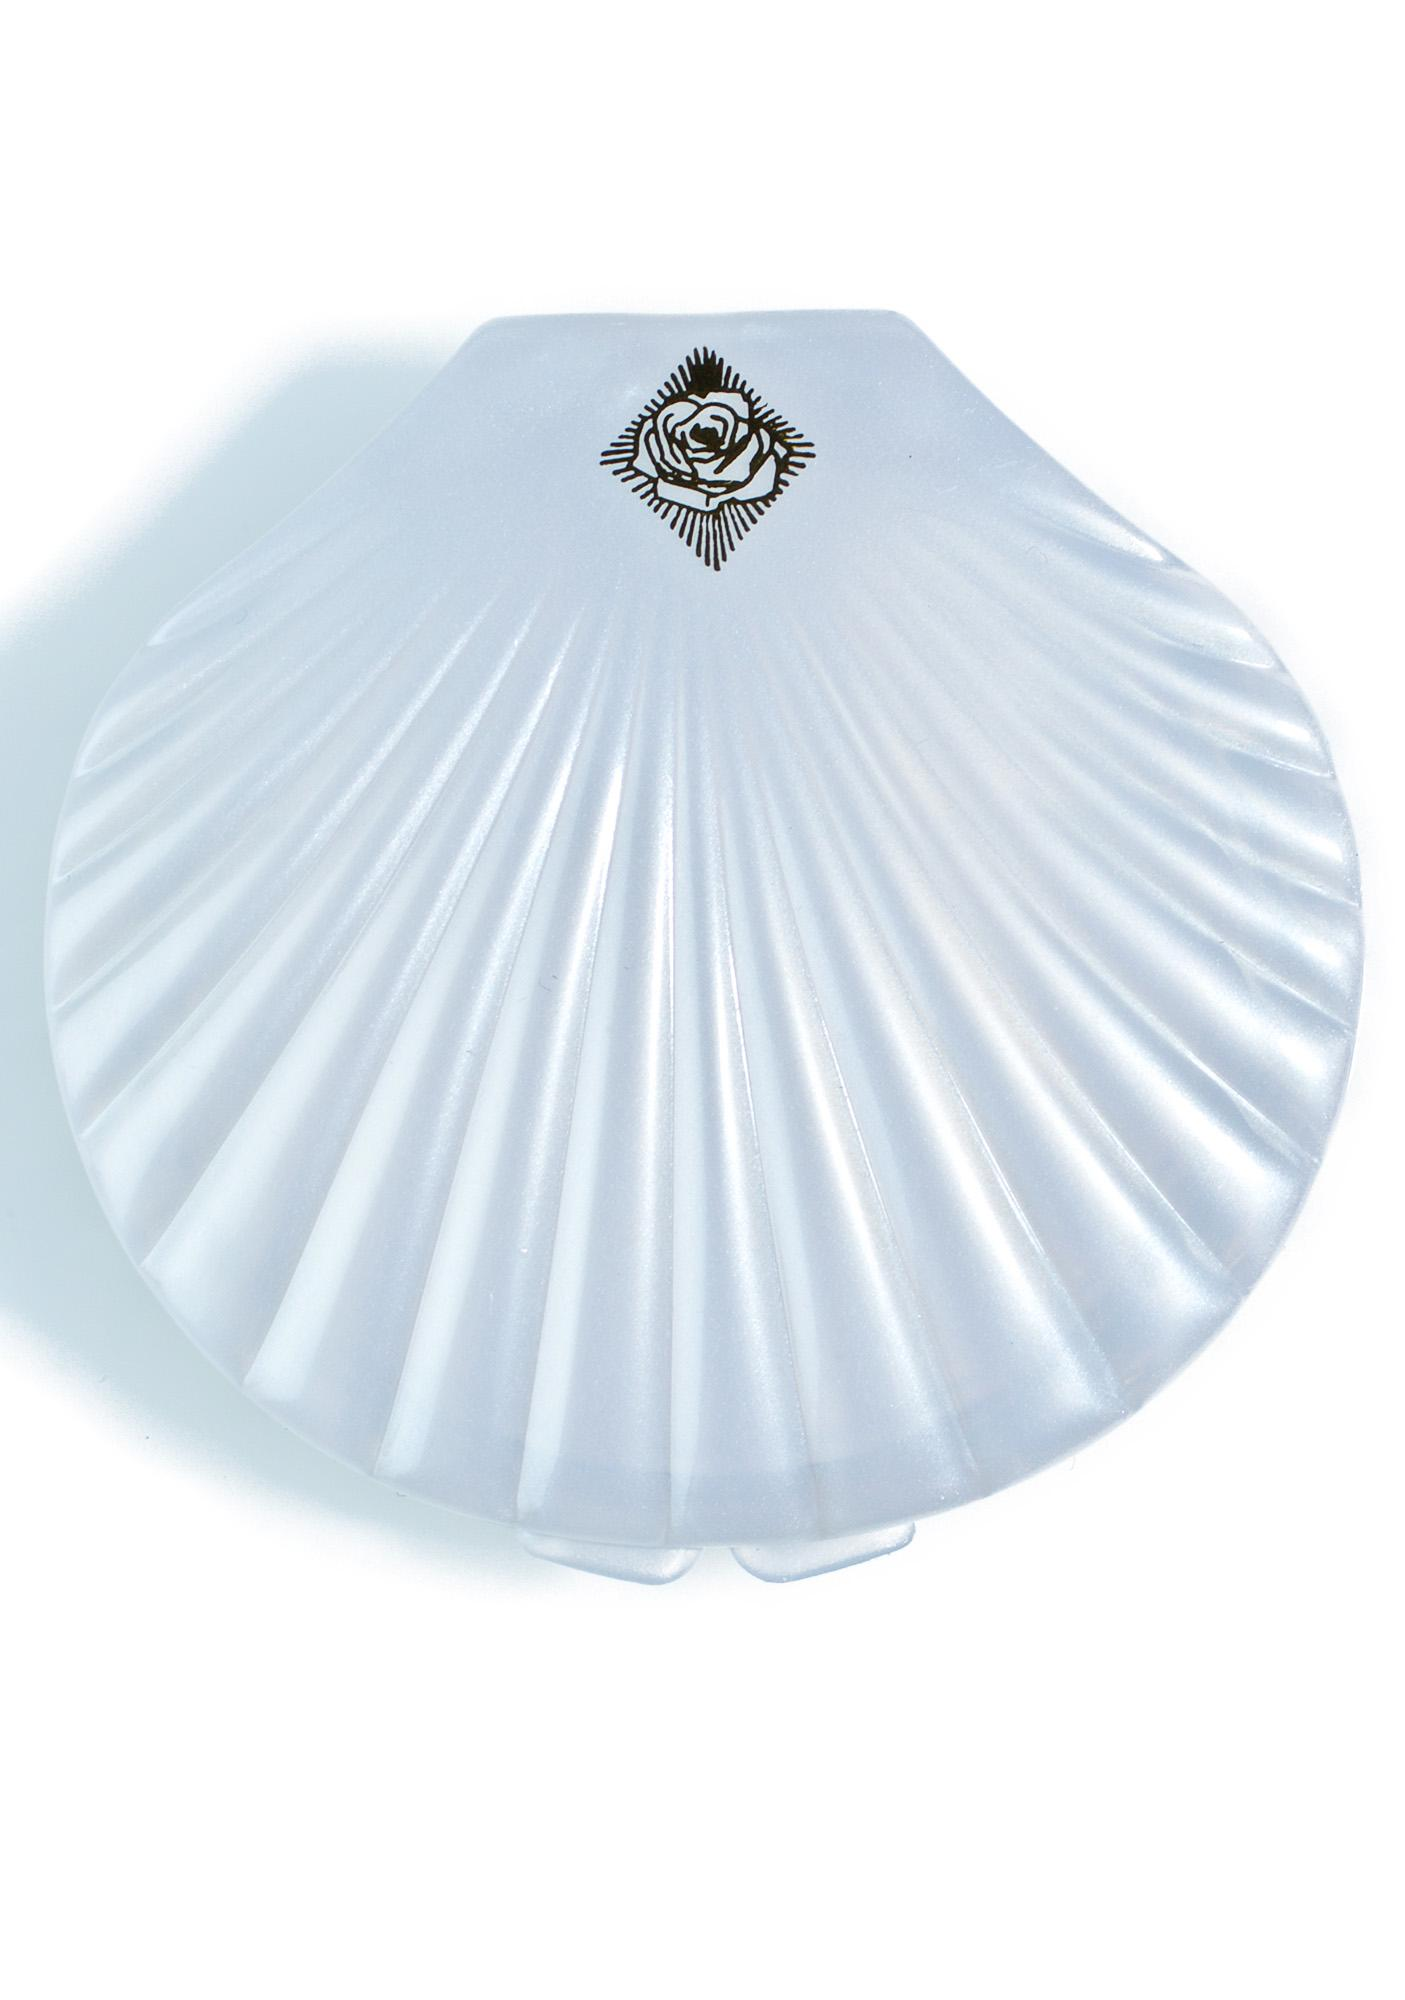 Rosehound Apparel Shell Compact Mirror